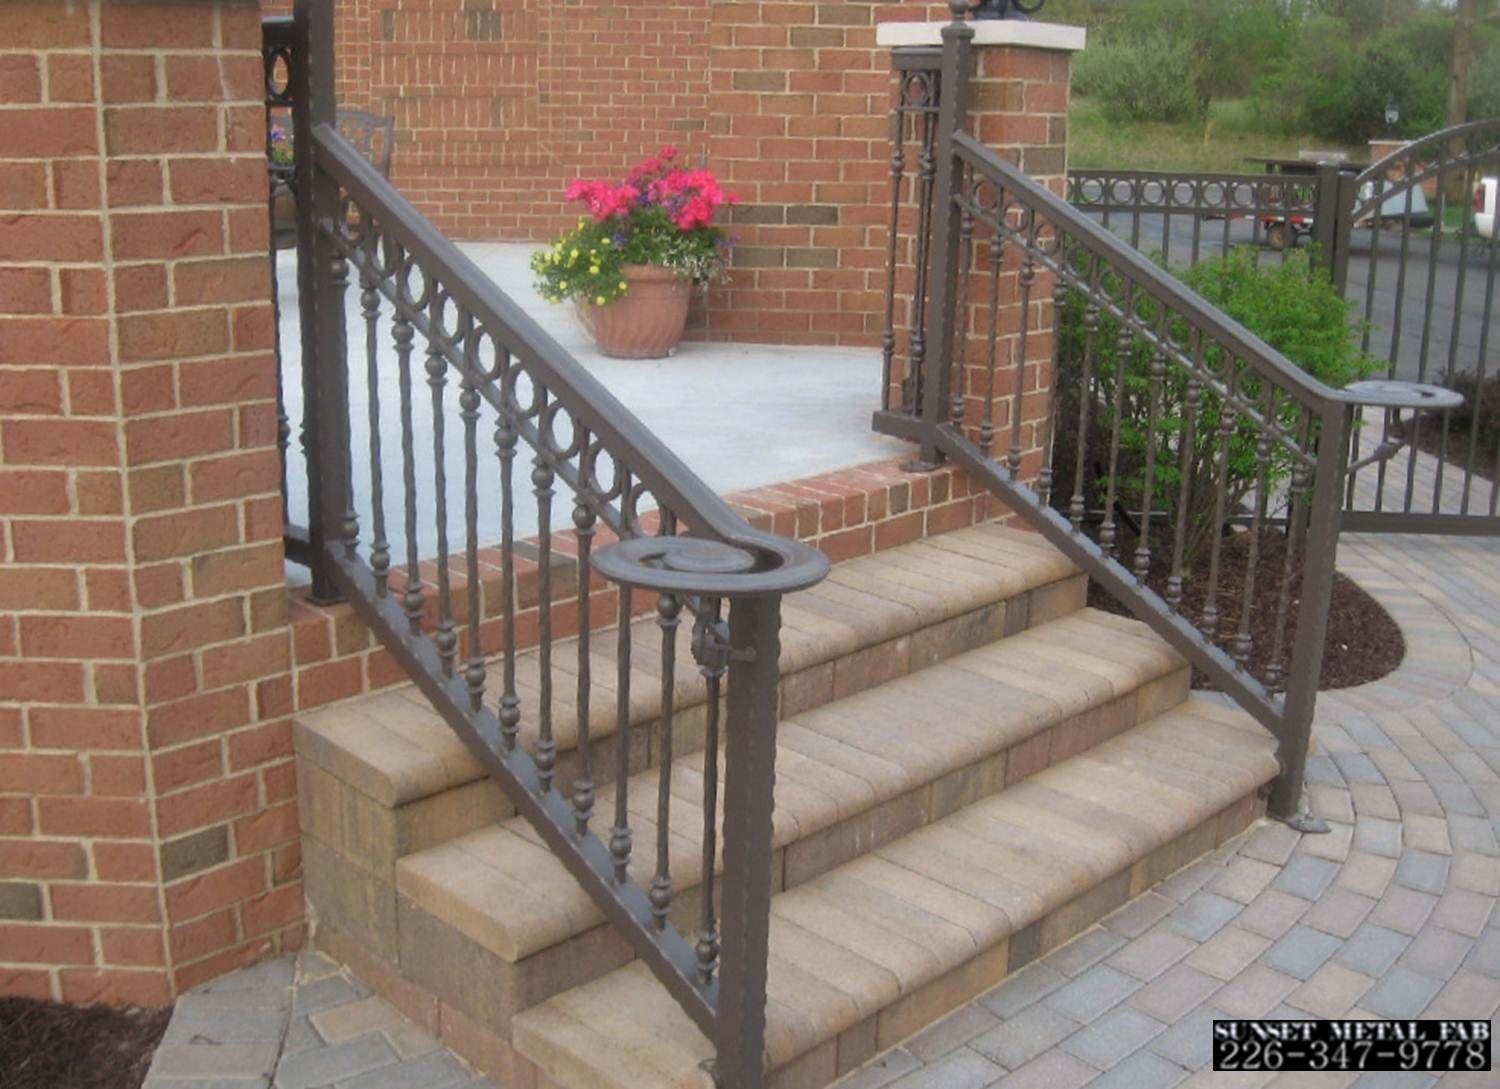 48 Top Exterior Wrought Iron Handrails Railings Outdoor | Iron Handrails For Outdoor Steps | Deck | Simple | Outside | Free Standing | Galvanized Iron